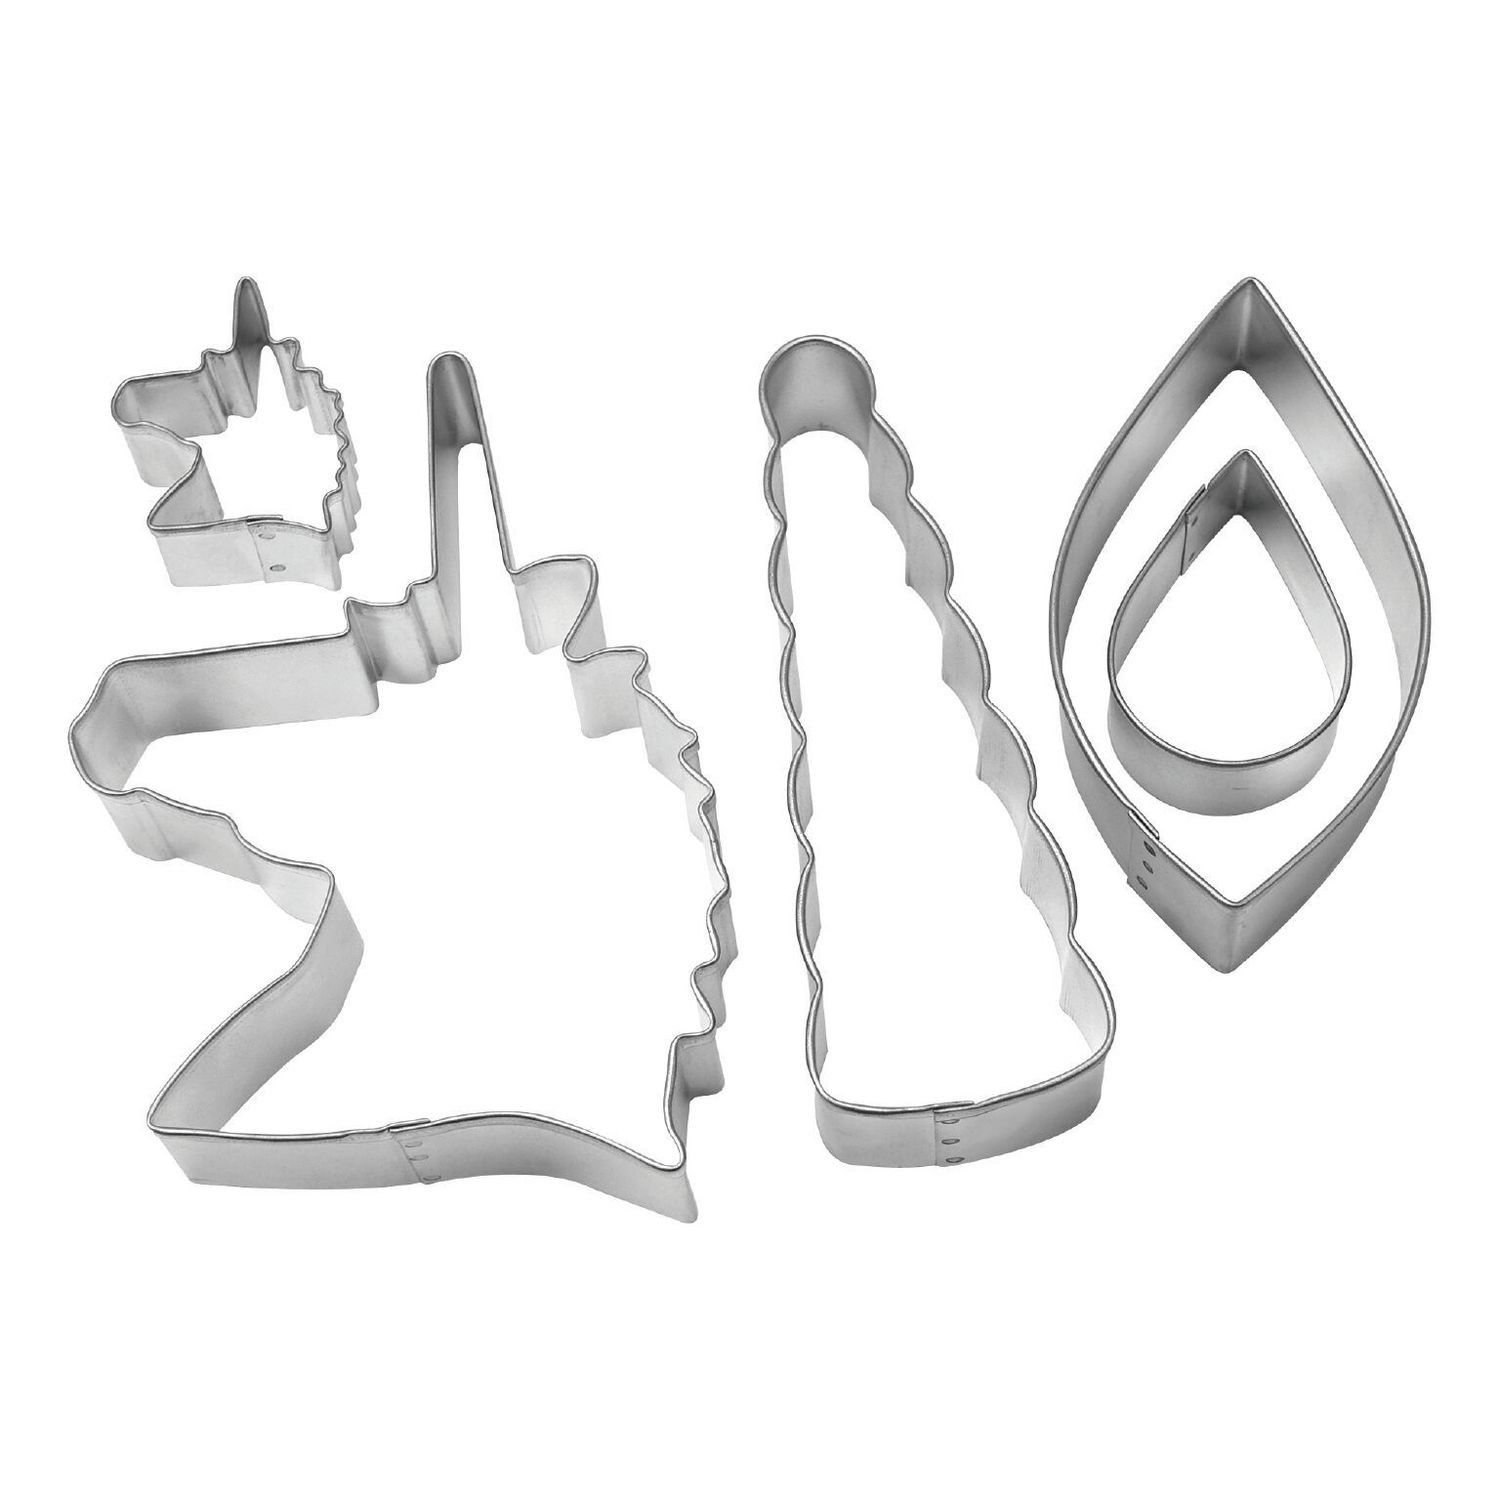 by AH - Cookie Cutter Set of 5 Unicorn Cake Decorating Kit - Κουπάτ Μονόκερος - σετ 5 Τεμαχίων - 4,4 - 12εκ